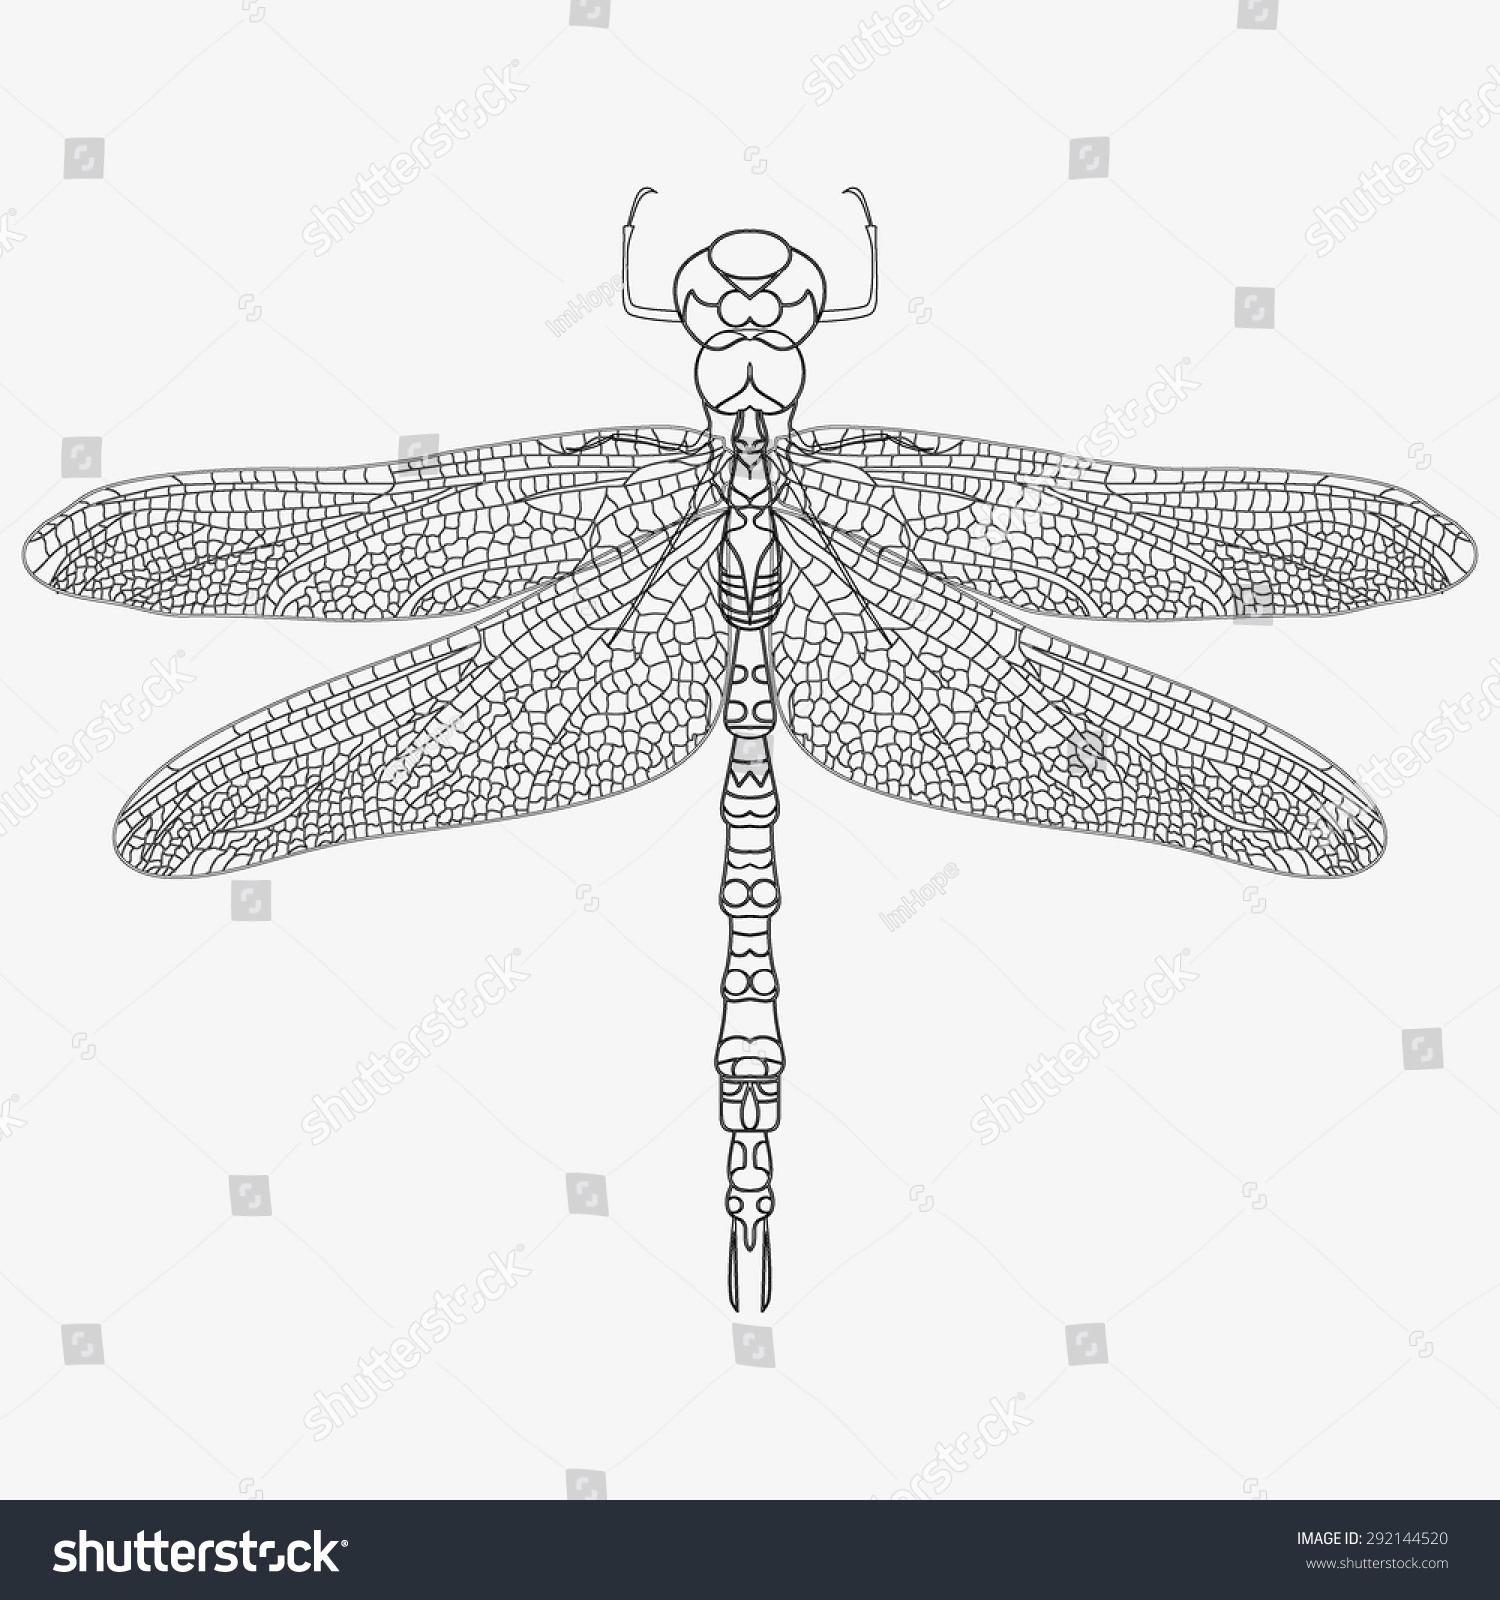 Coloring in dragonflies - Vector Dragonfly Isolate A Realistic Picture Of The Insect A Clear Outline Stylish